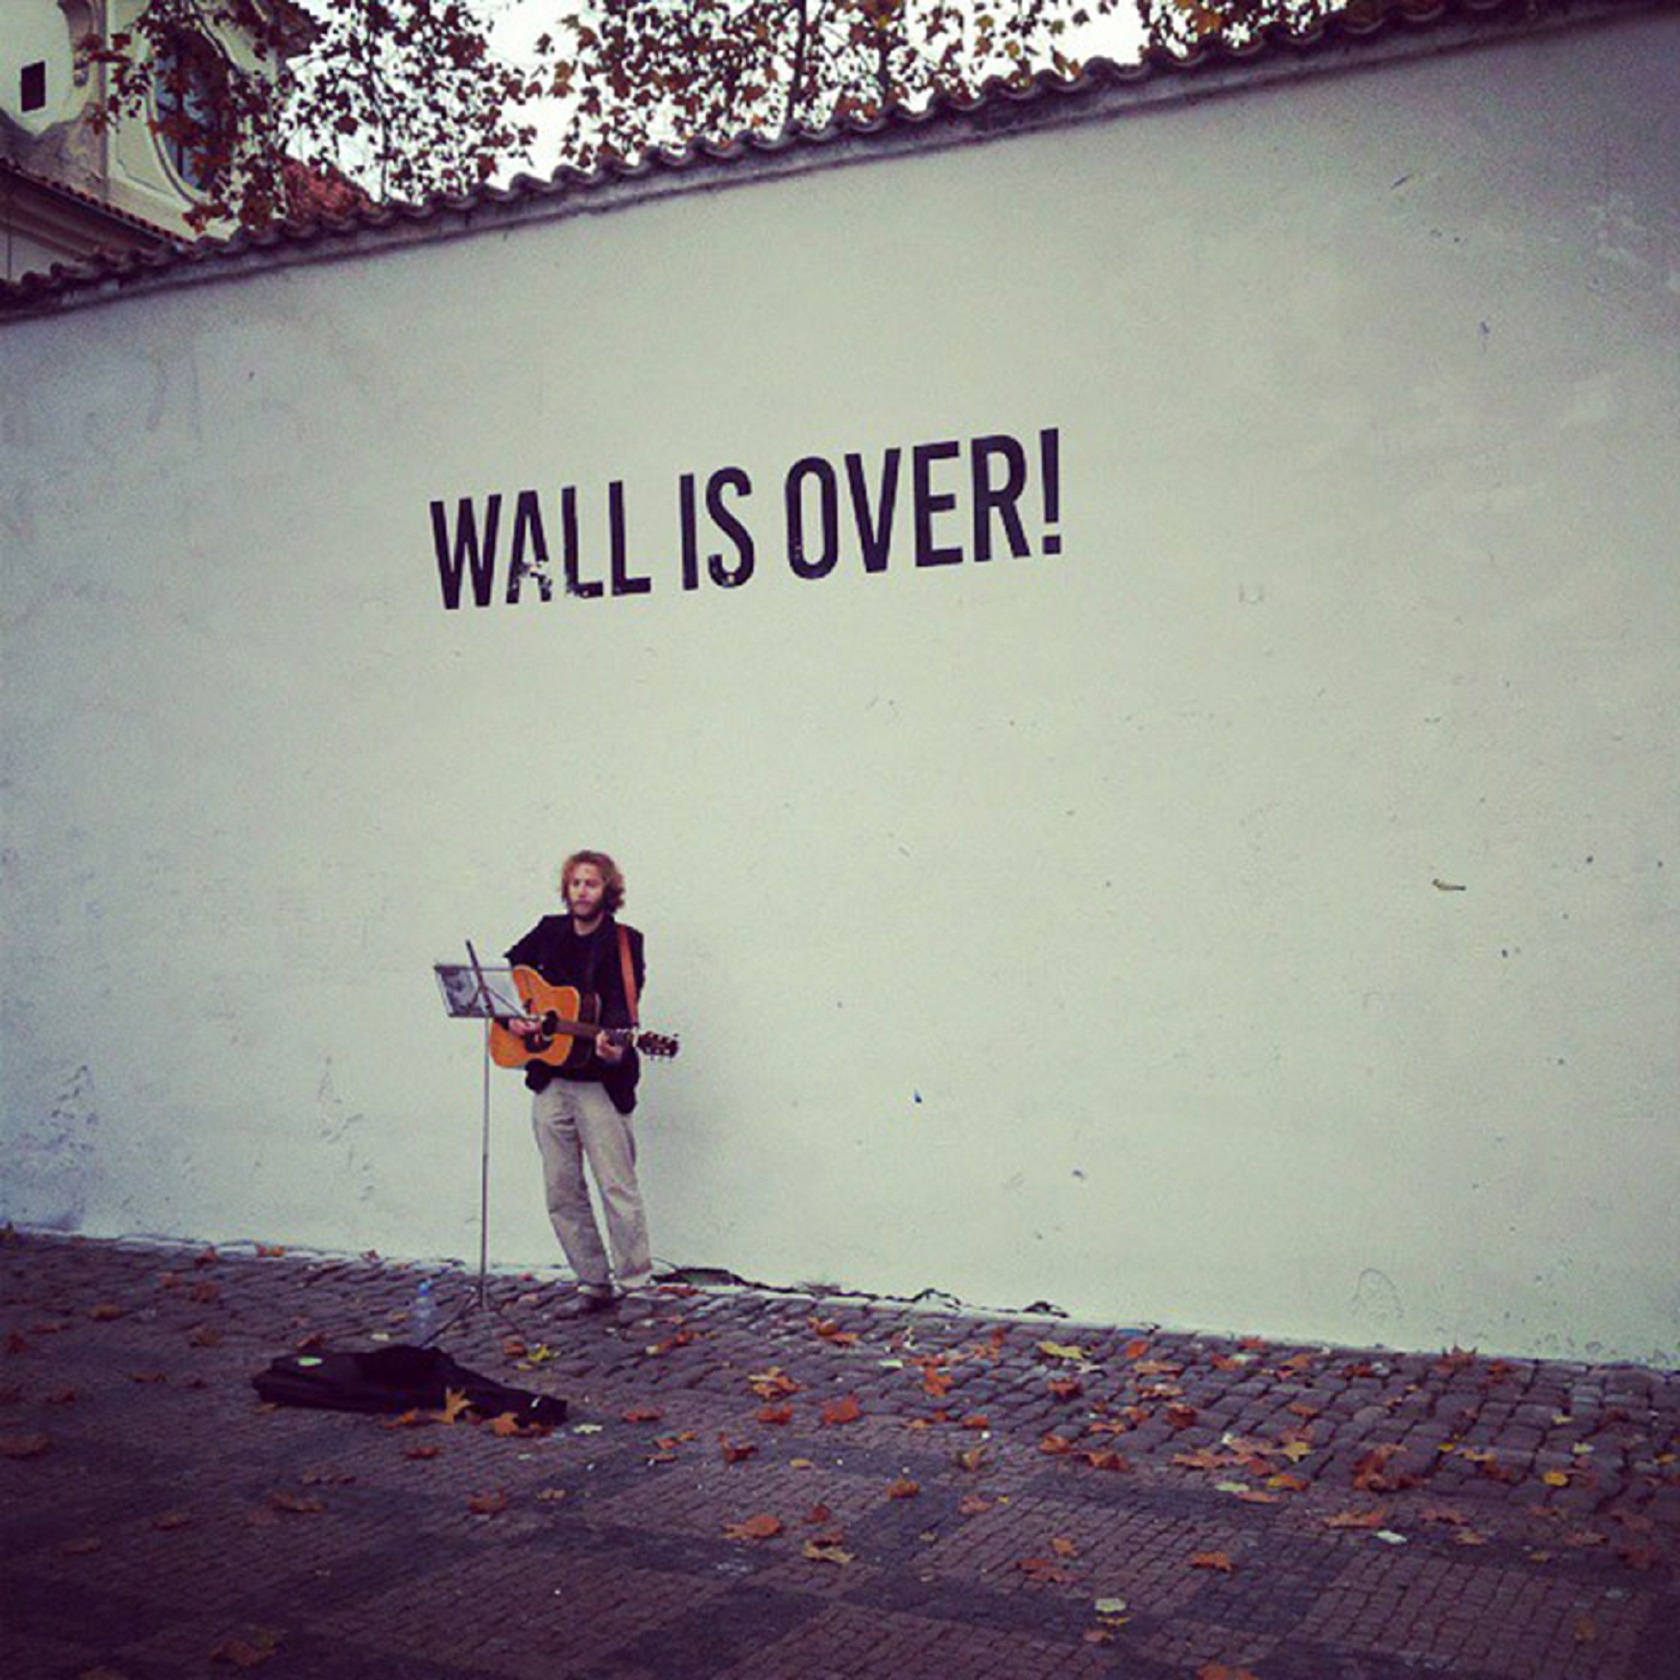 Wall is over